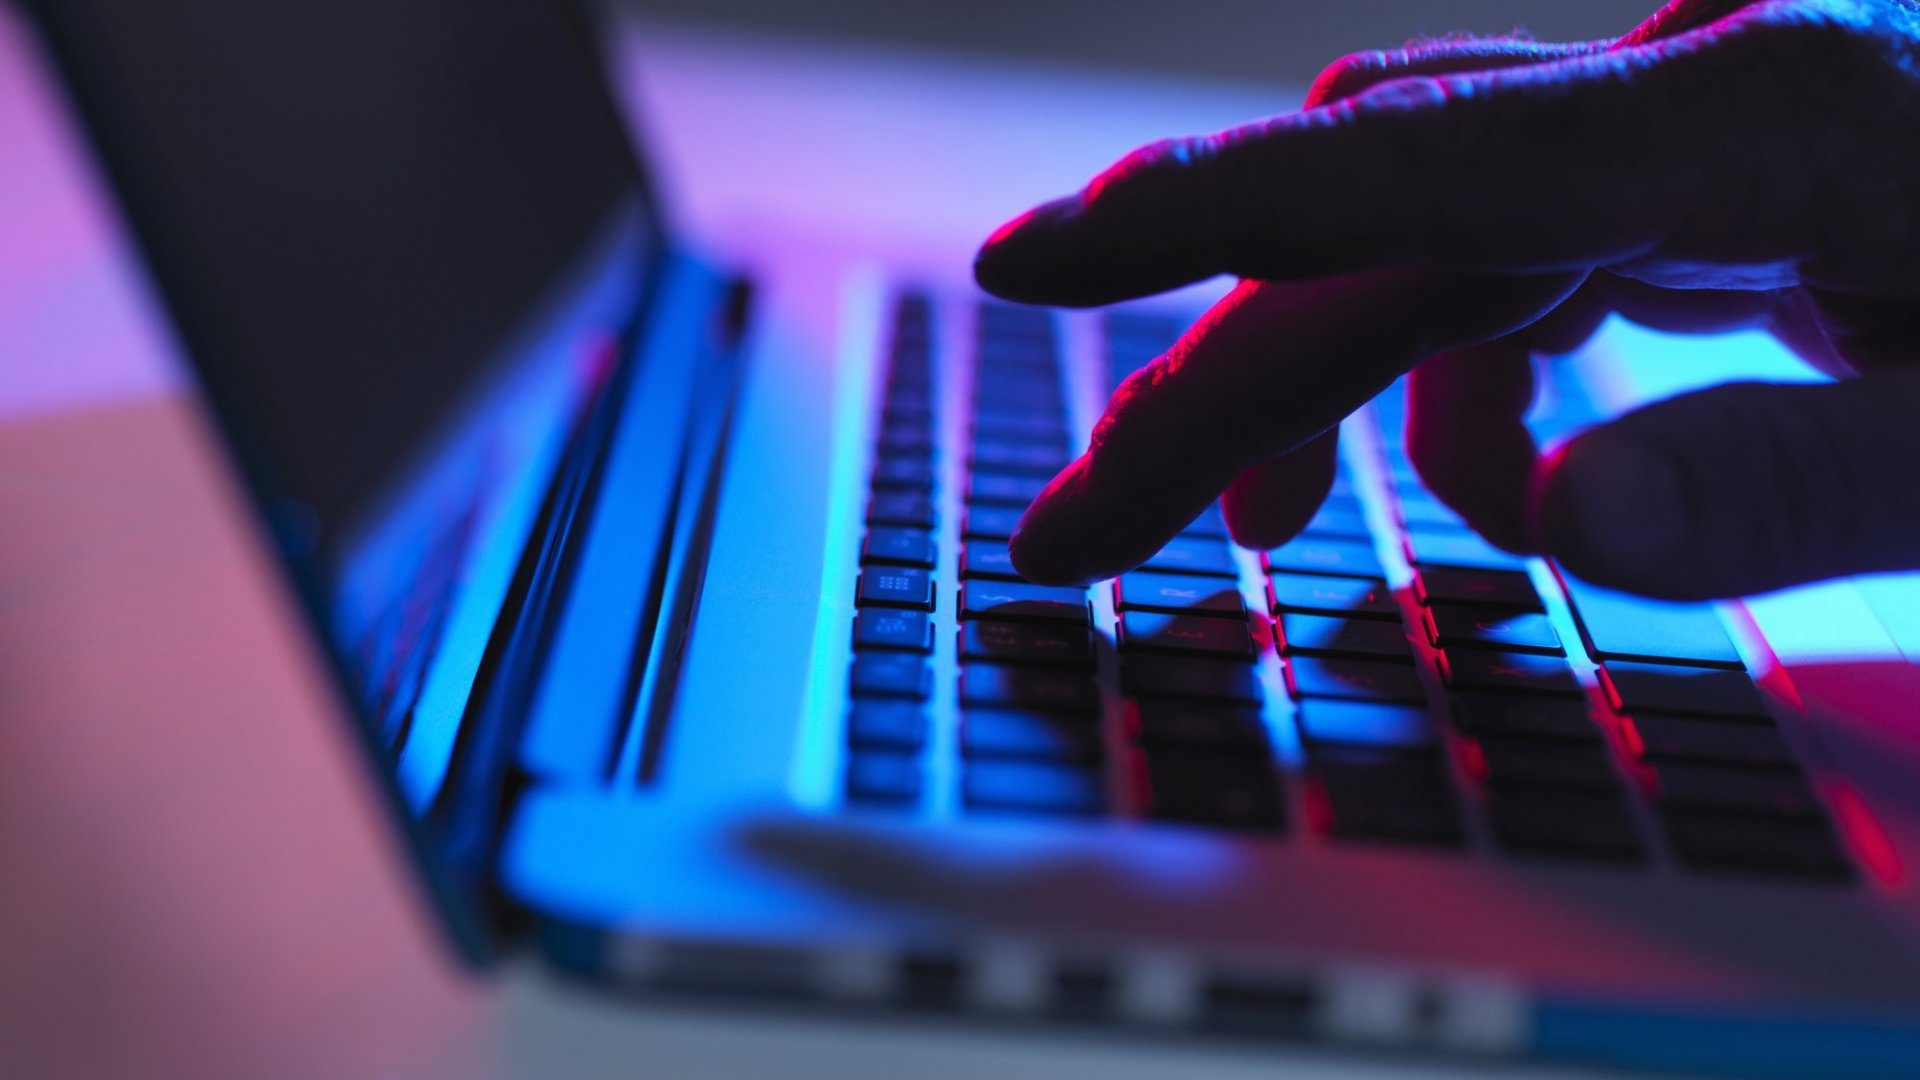 1 in 5 Employees Are Willing to Sell Work Passwords